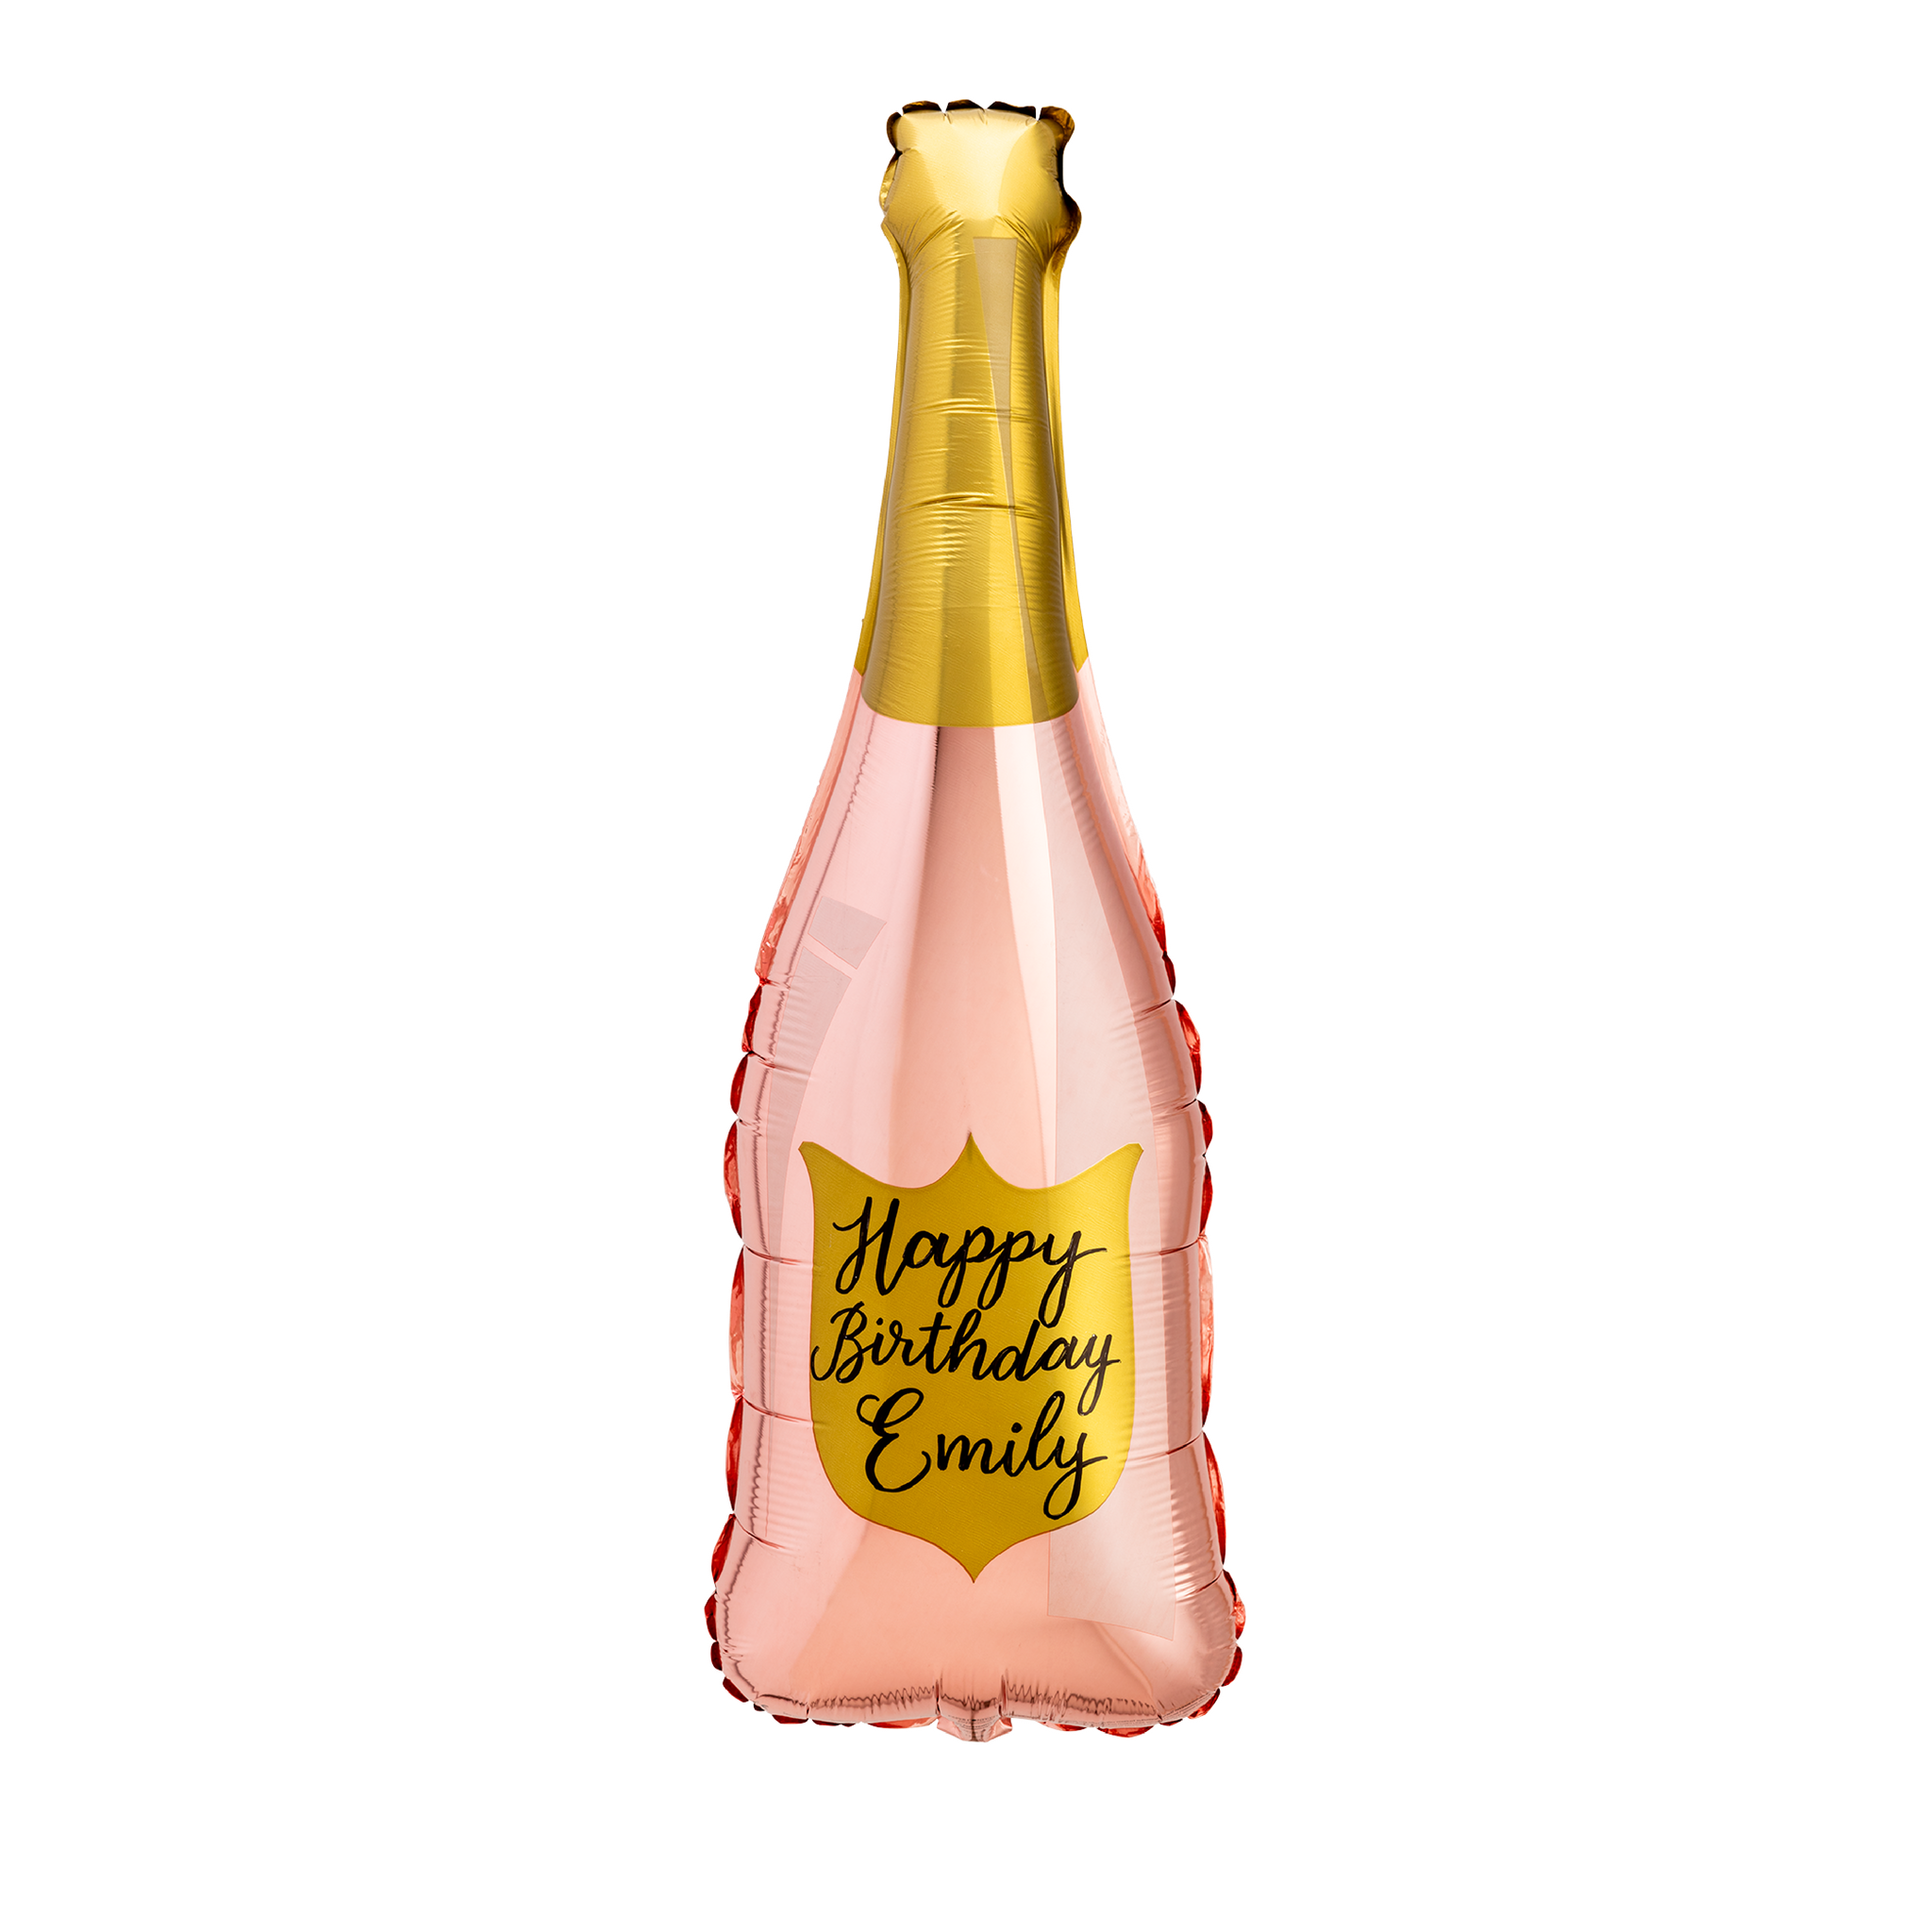 Rose Gold Champagne Bottle Balloon - Paper Confetti Events